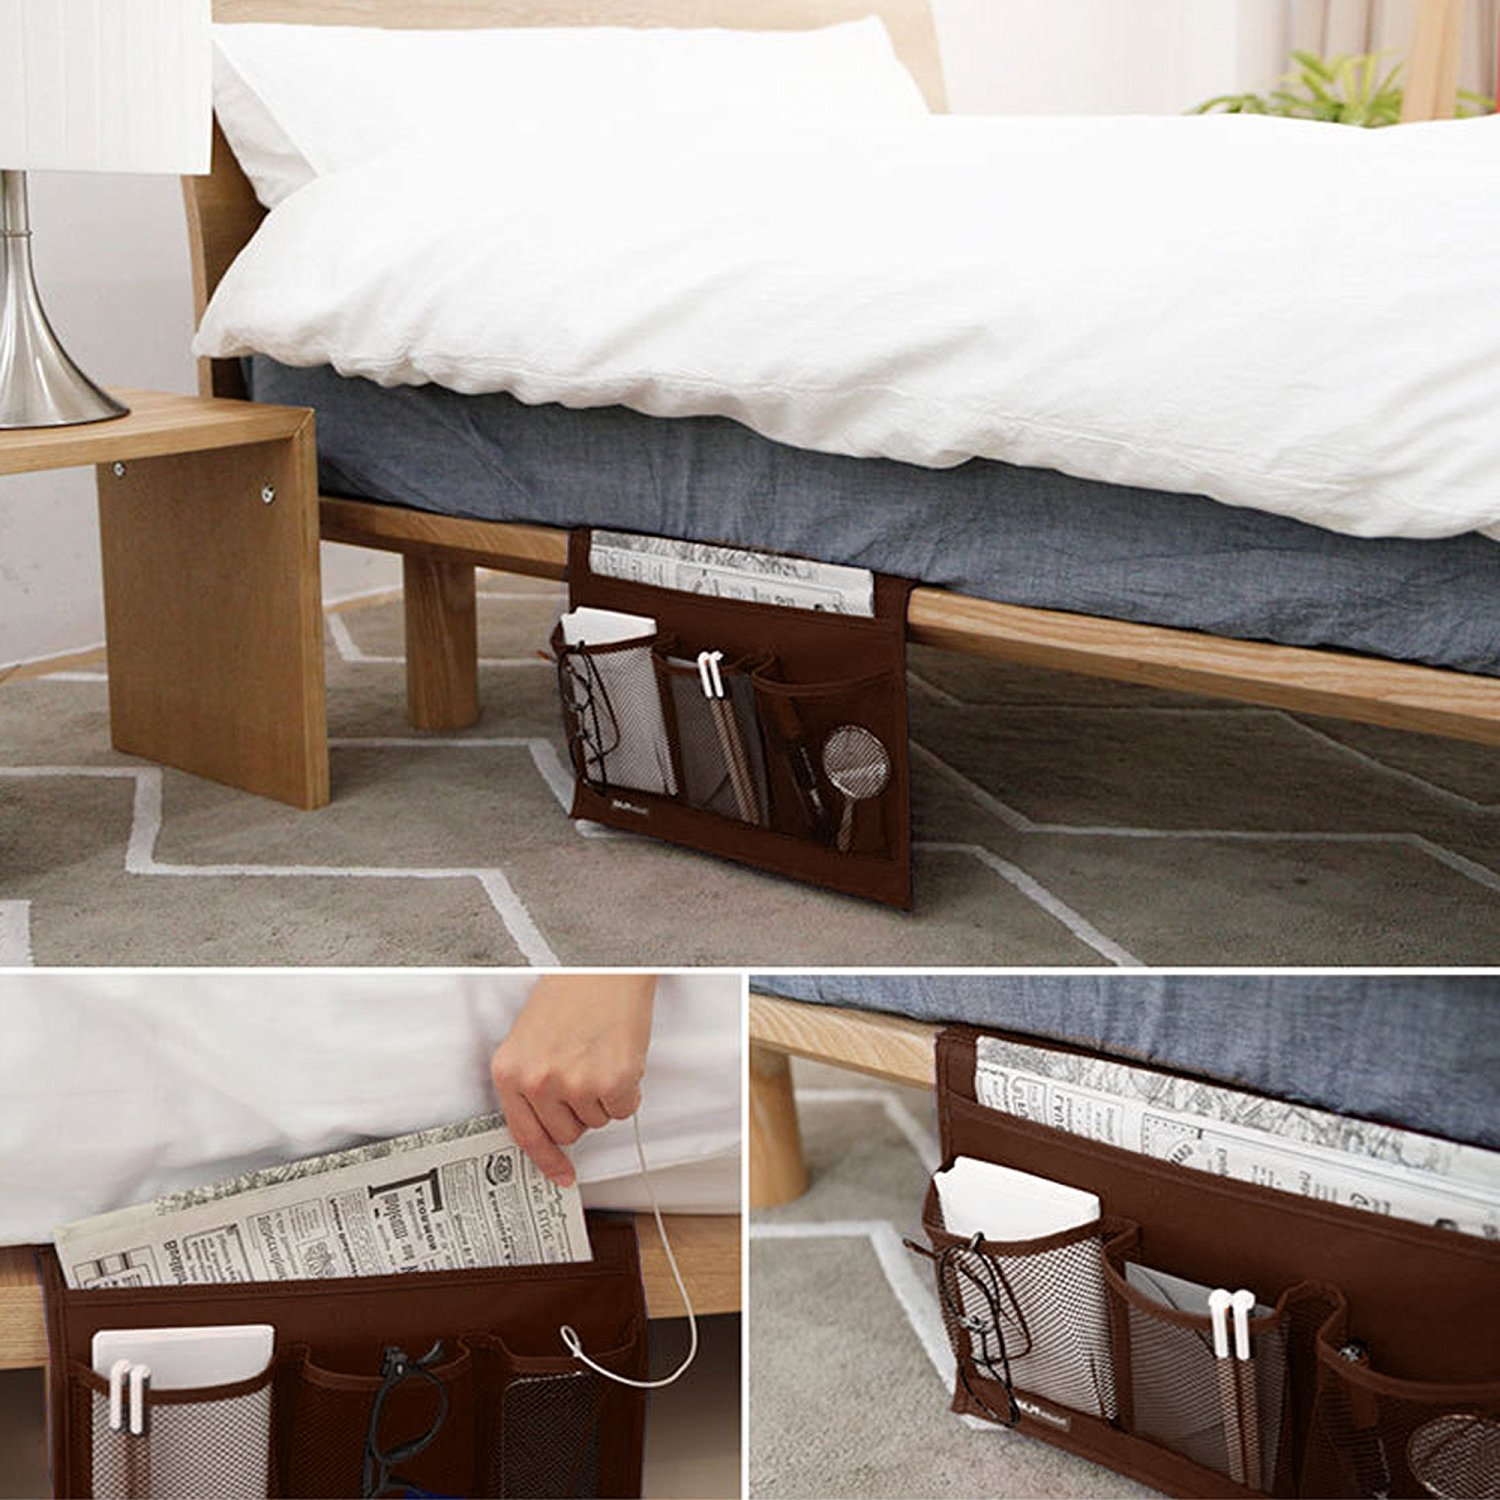 Get Quotations · Bedside Caddy Storage Organizer 4-Pocket Bedside Hanging Caddy Desk Storage Organizer Bag for & Cheap Bed Storage Caddy find Bed Storage Caddy deals on line at ...